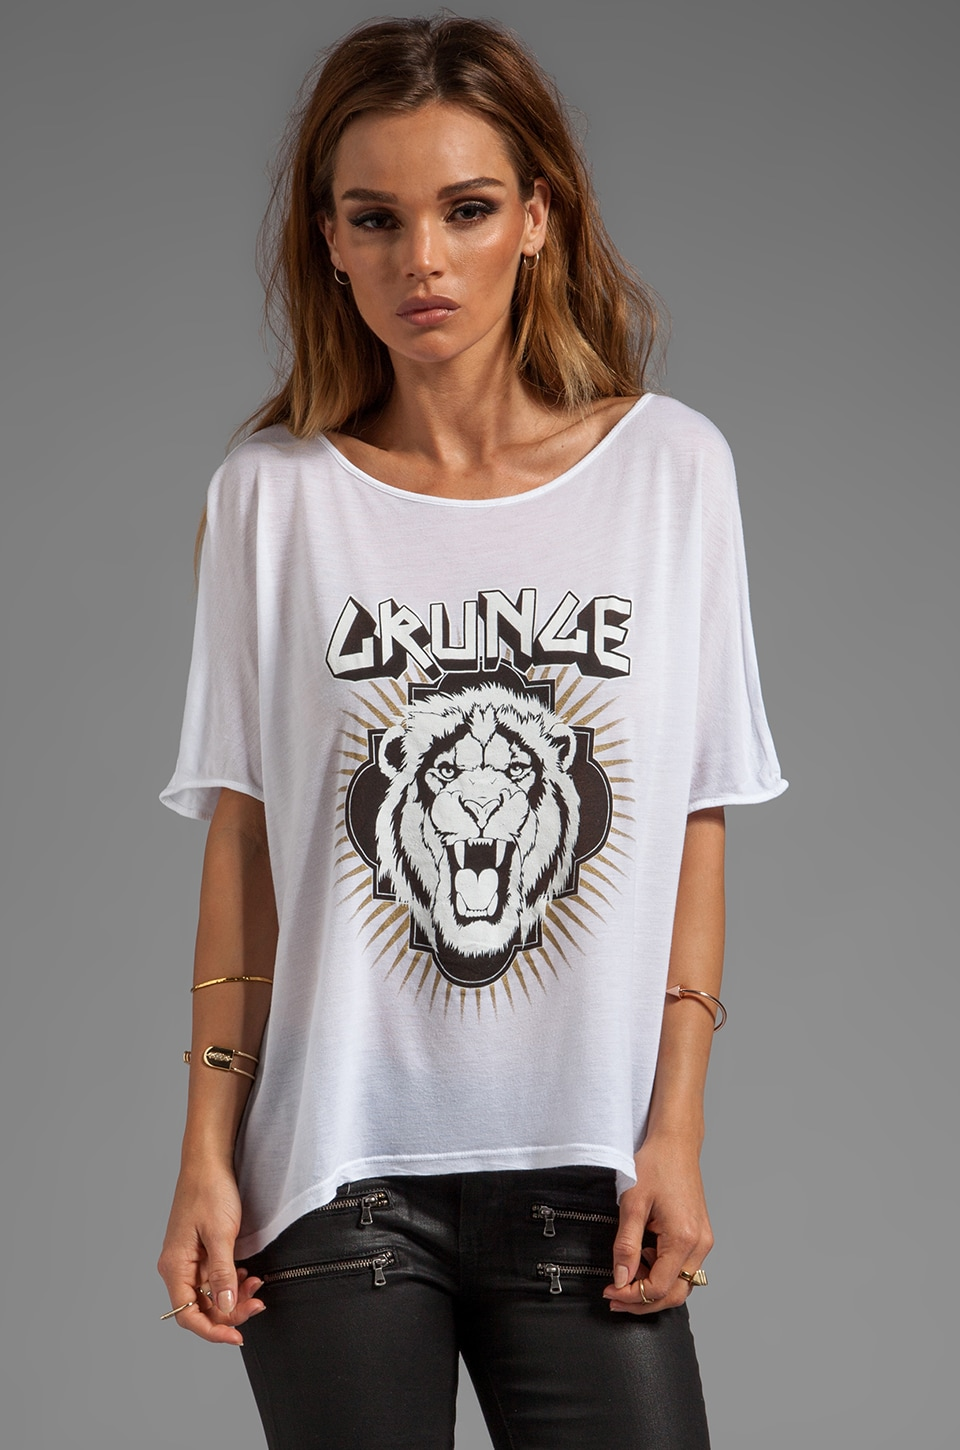 291 Grunge Lion Oversized Hi Low Tee in White